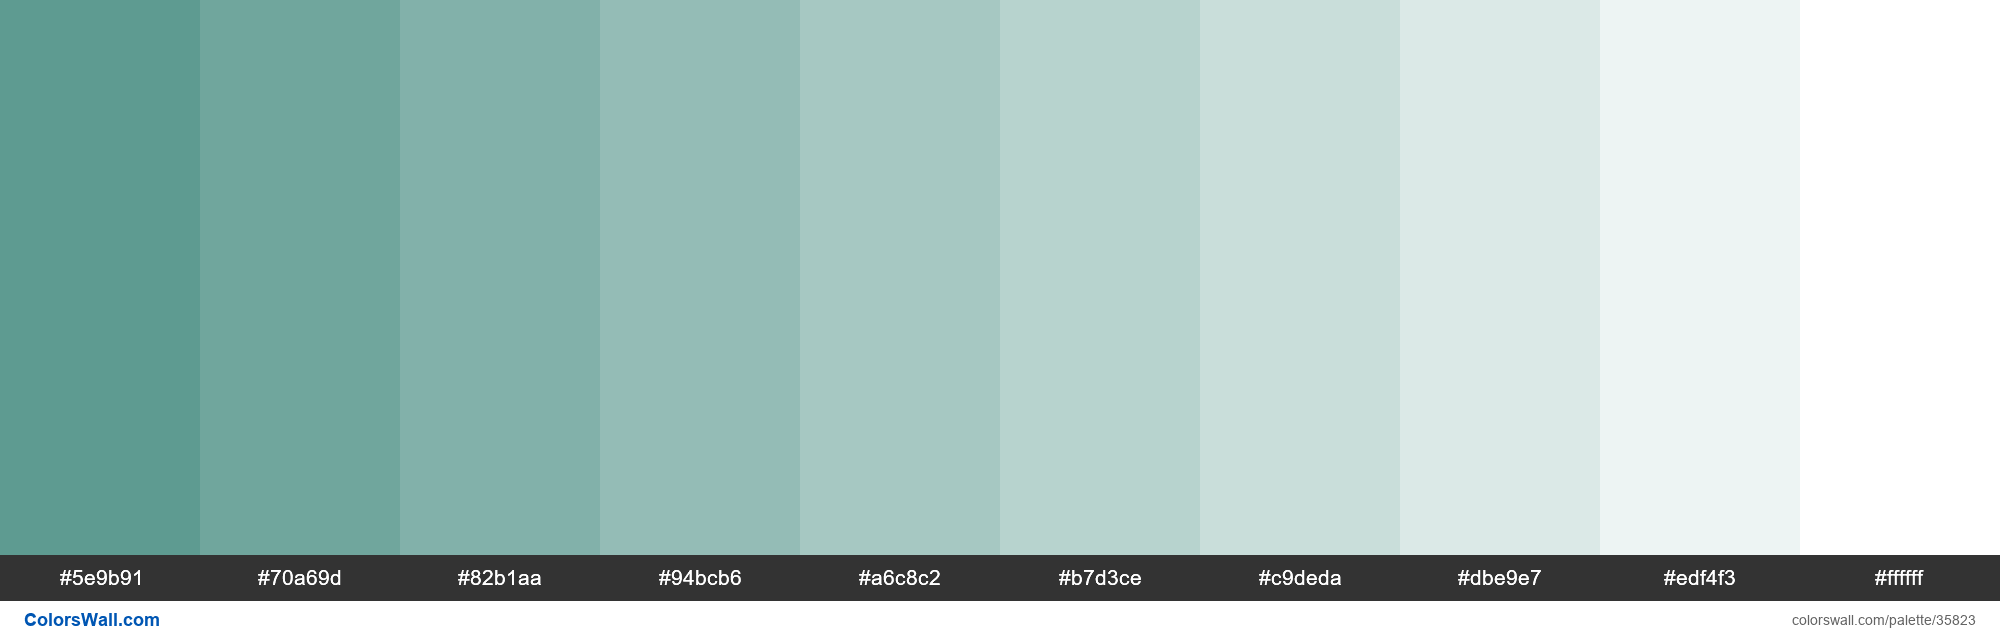 Tints XKCD Color dusty teal #4c9085 hex - #35823